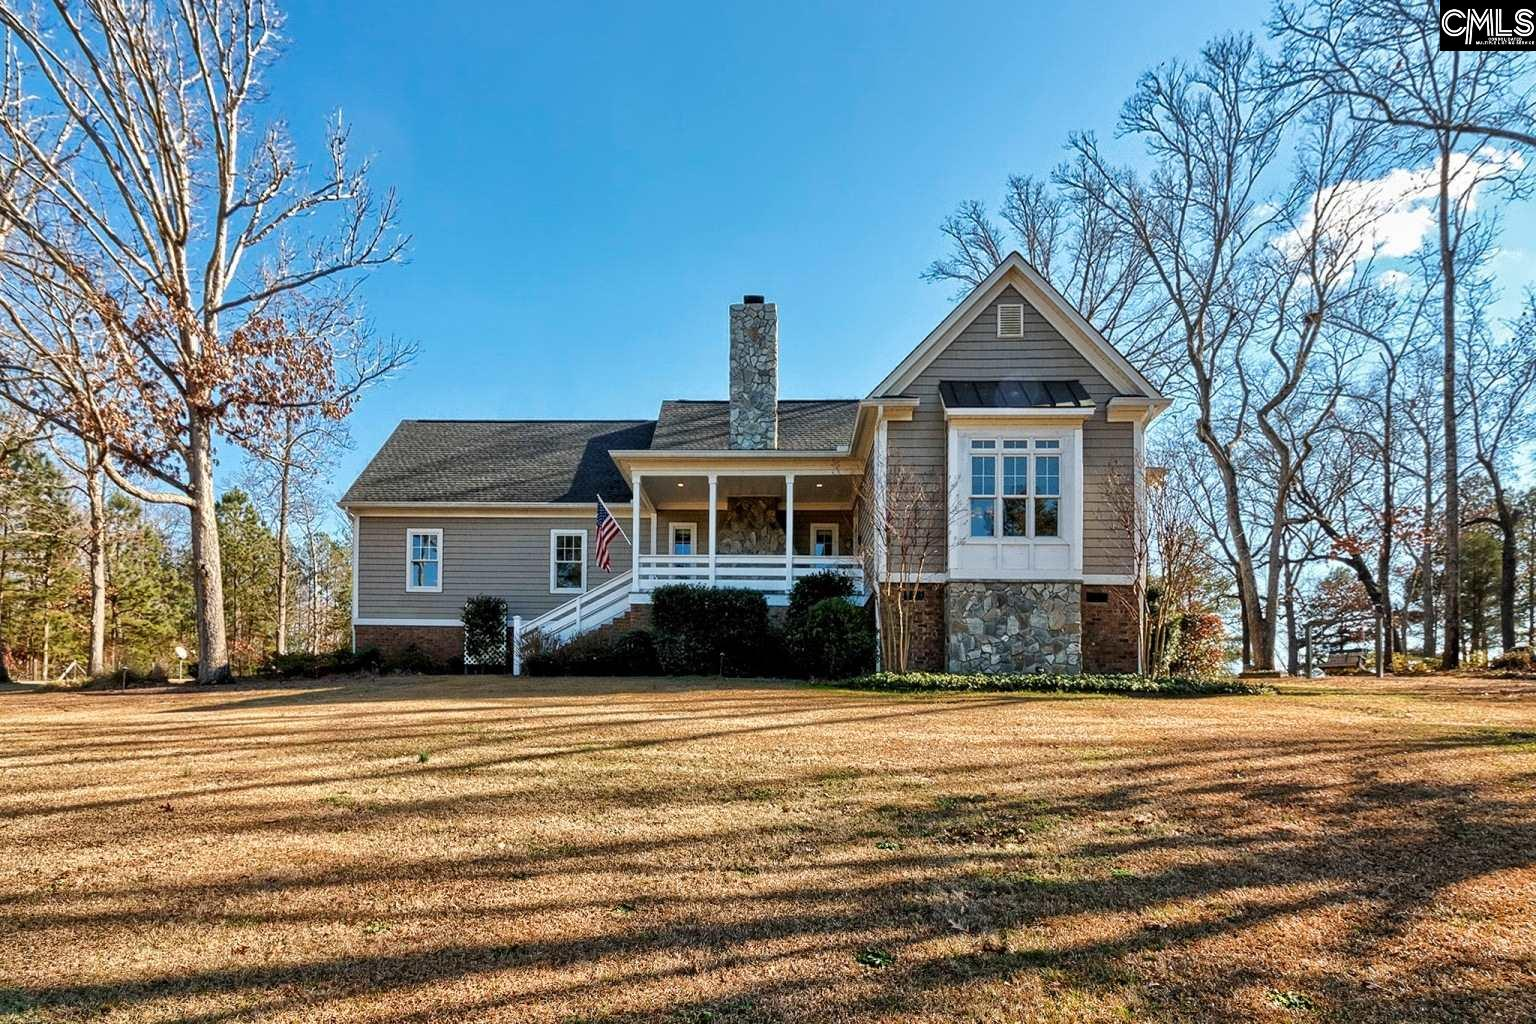 128 Paynehurst Lexington, SC 29072